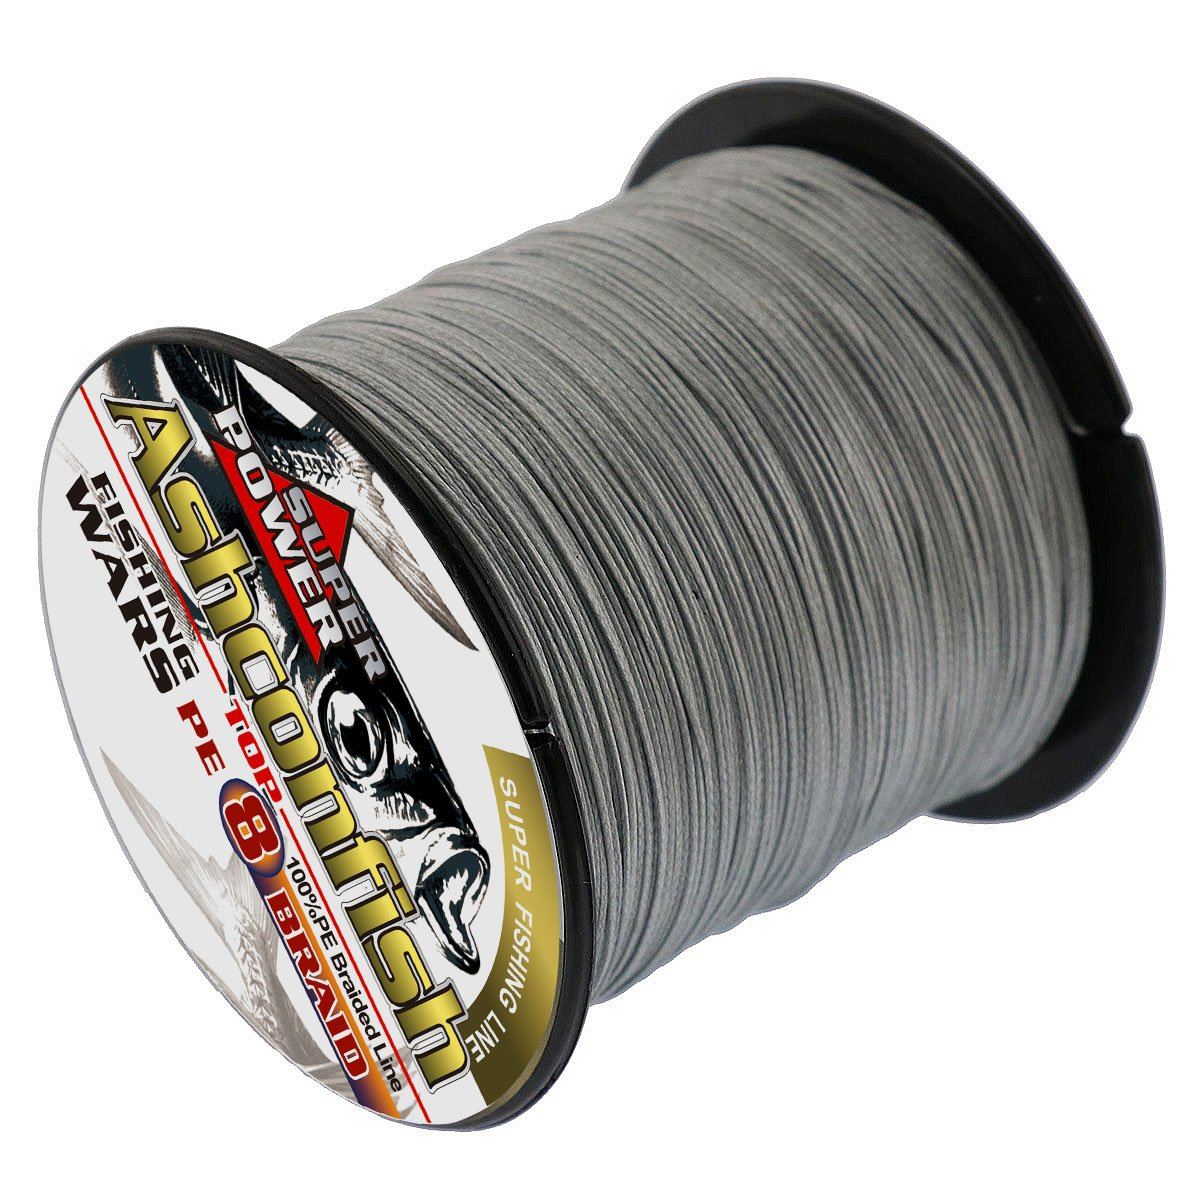 Ashconfish Braided Fishing Line-8 Strands Super Strong Fishing Wire 1000M//1093Yards-Abrasion Resistant Braided Lines-Incredible Superline-Zero Stretch-Superfine Diameter